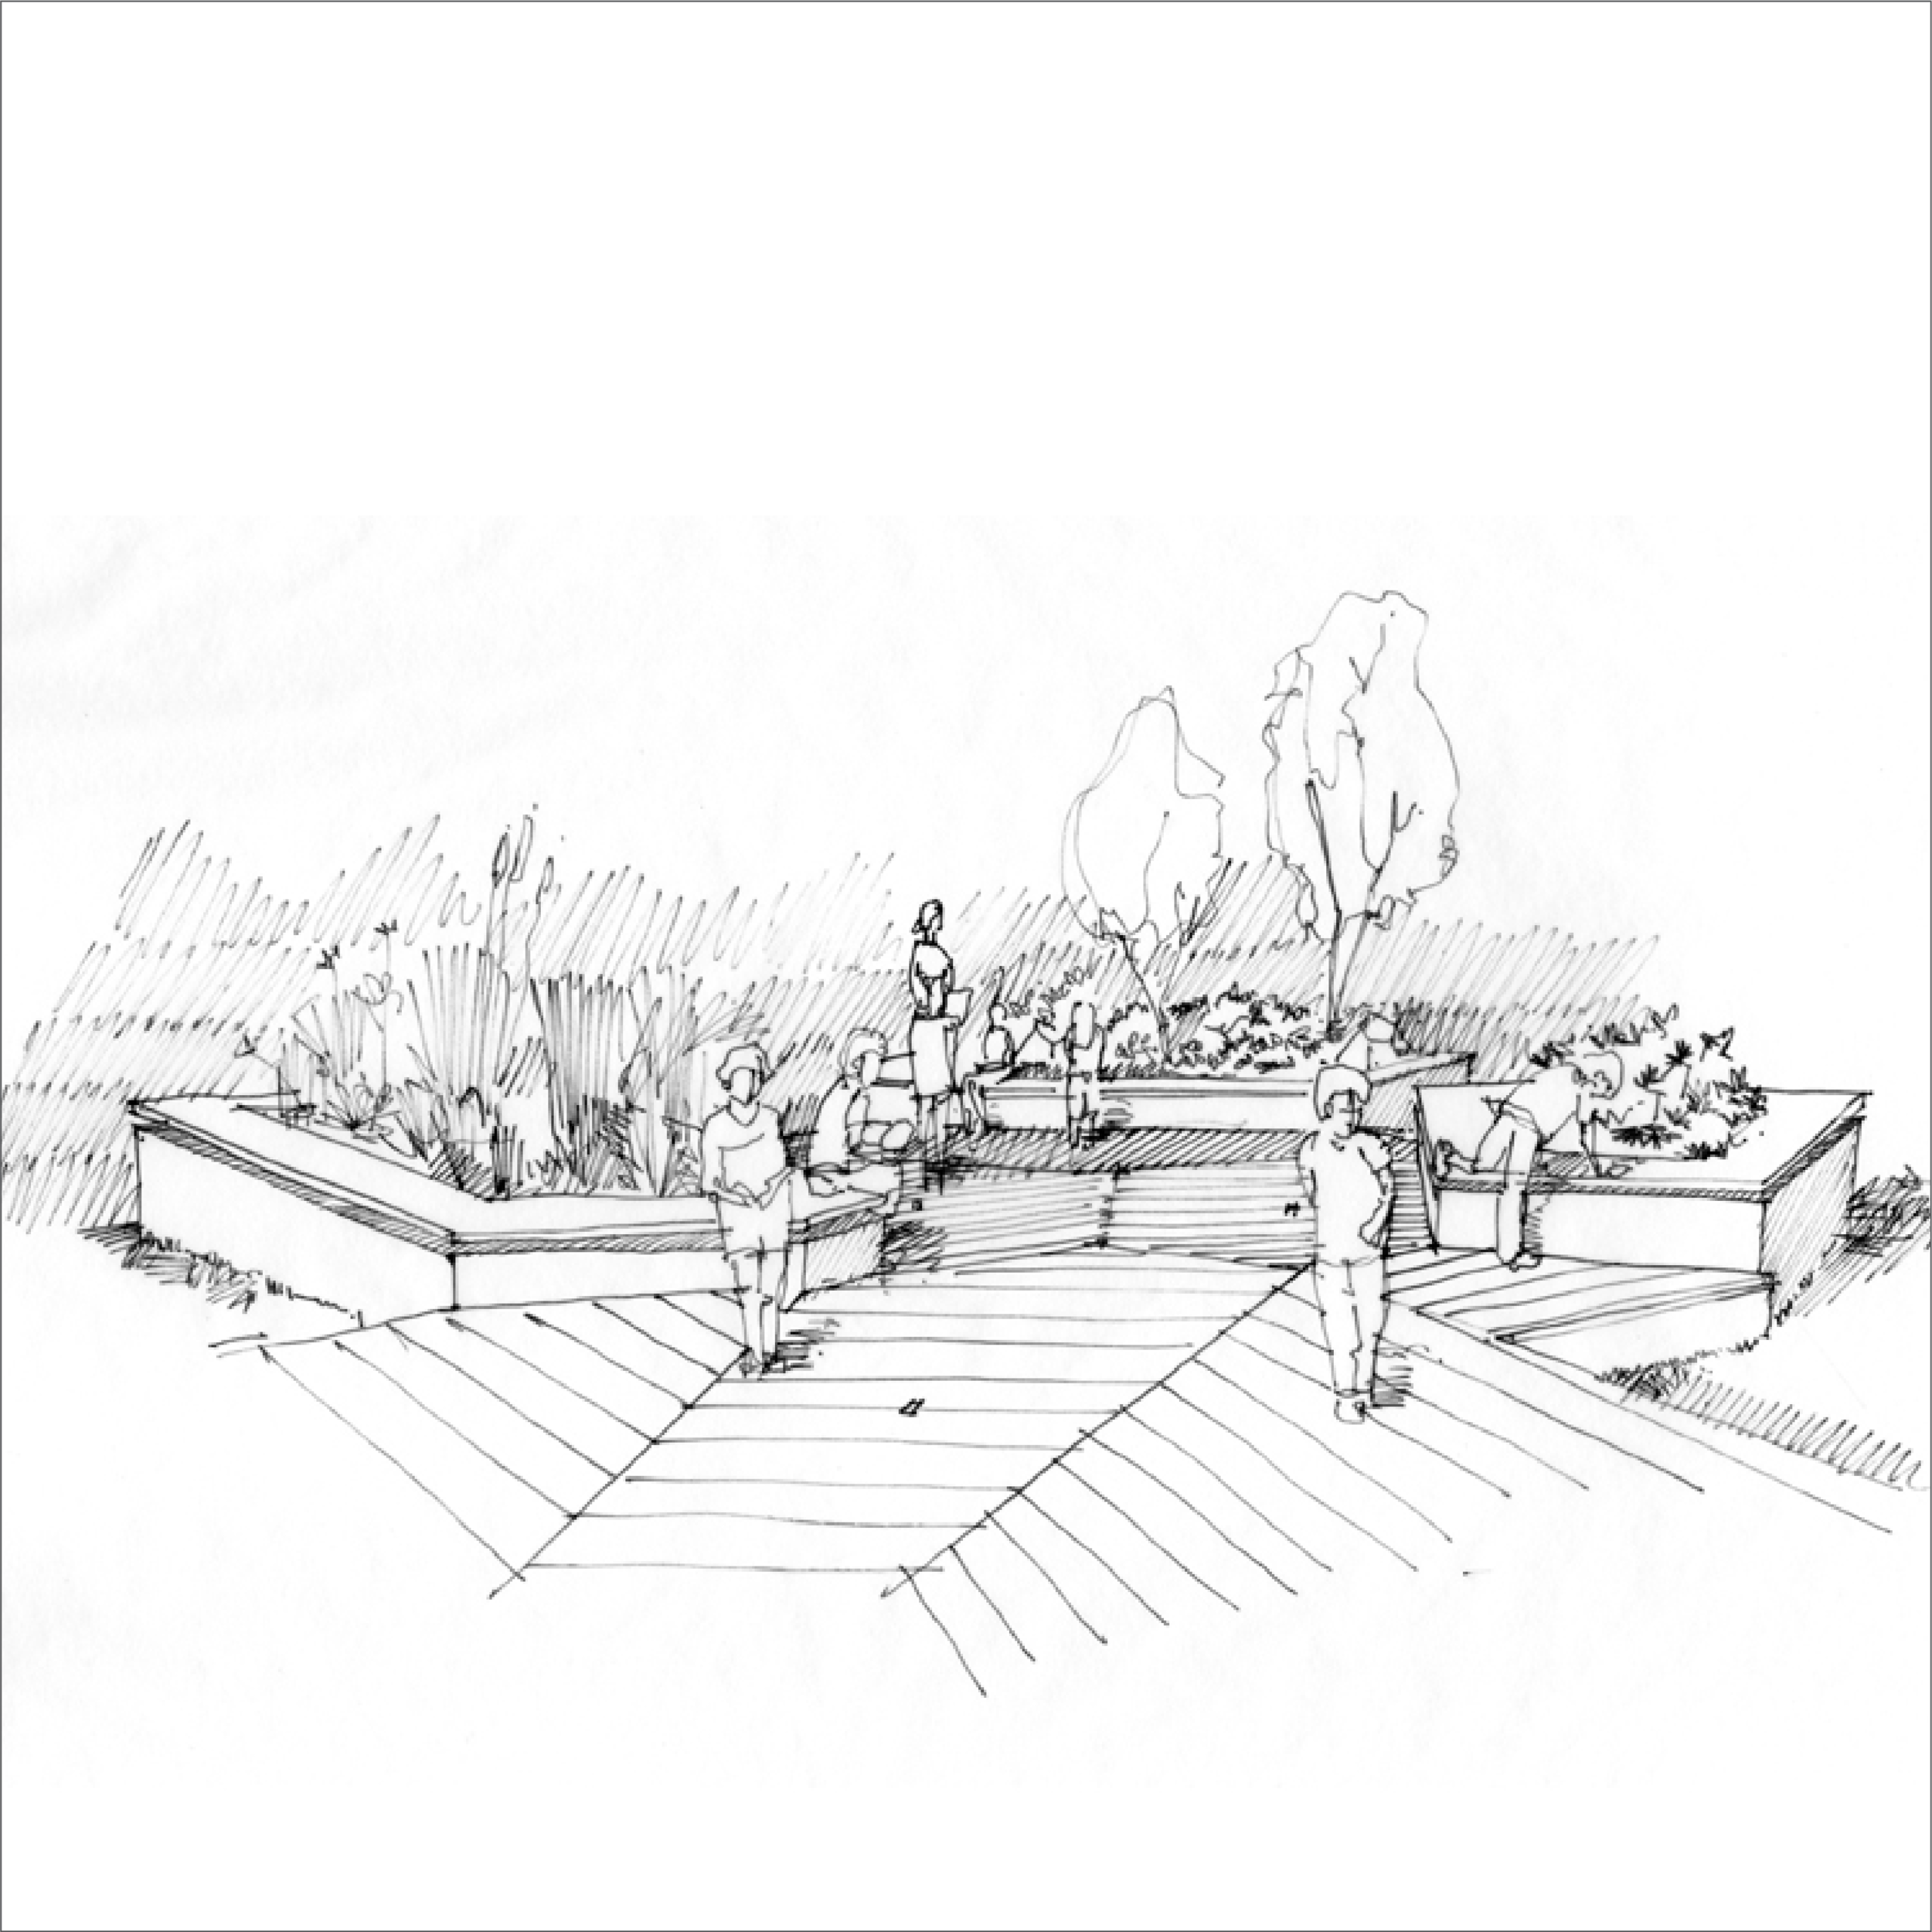 borough school sketch-01.png